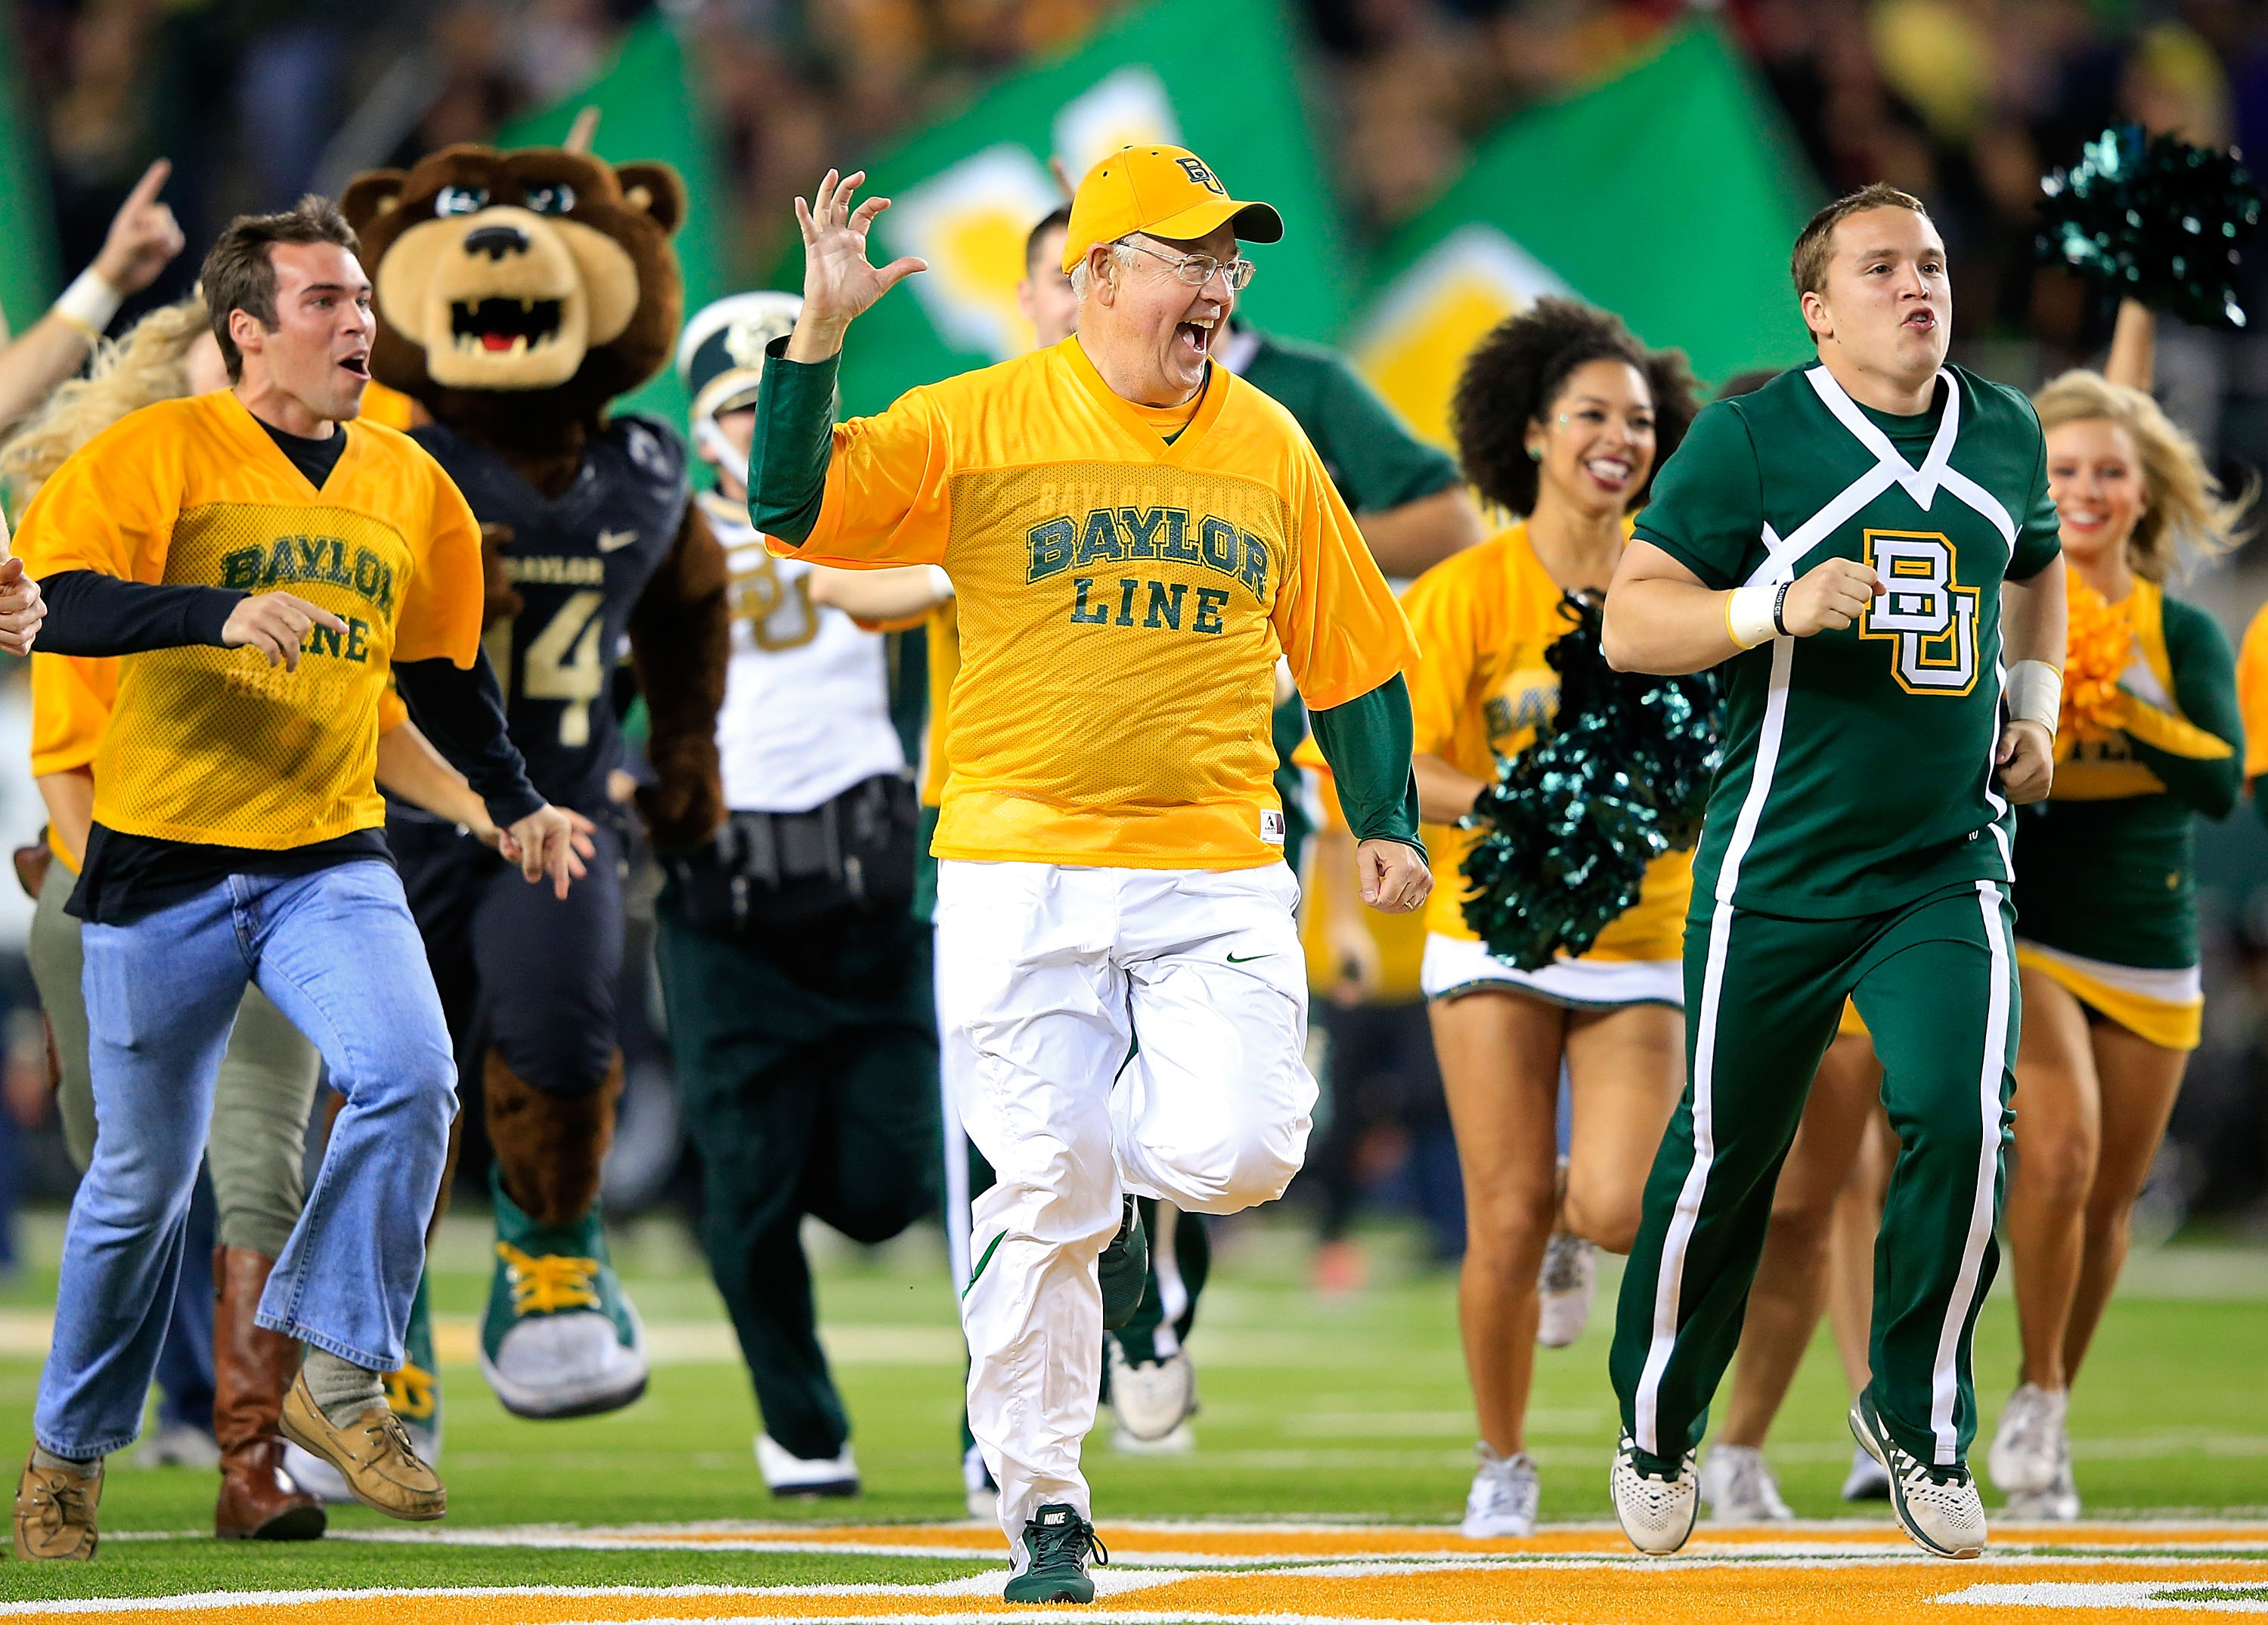 Baylor U Facing Questions Over Handling Of Sexual Assault